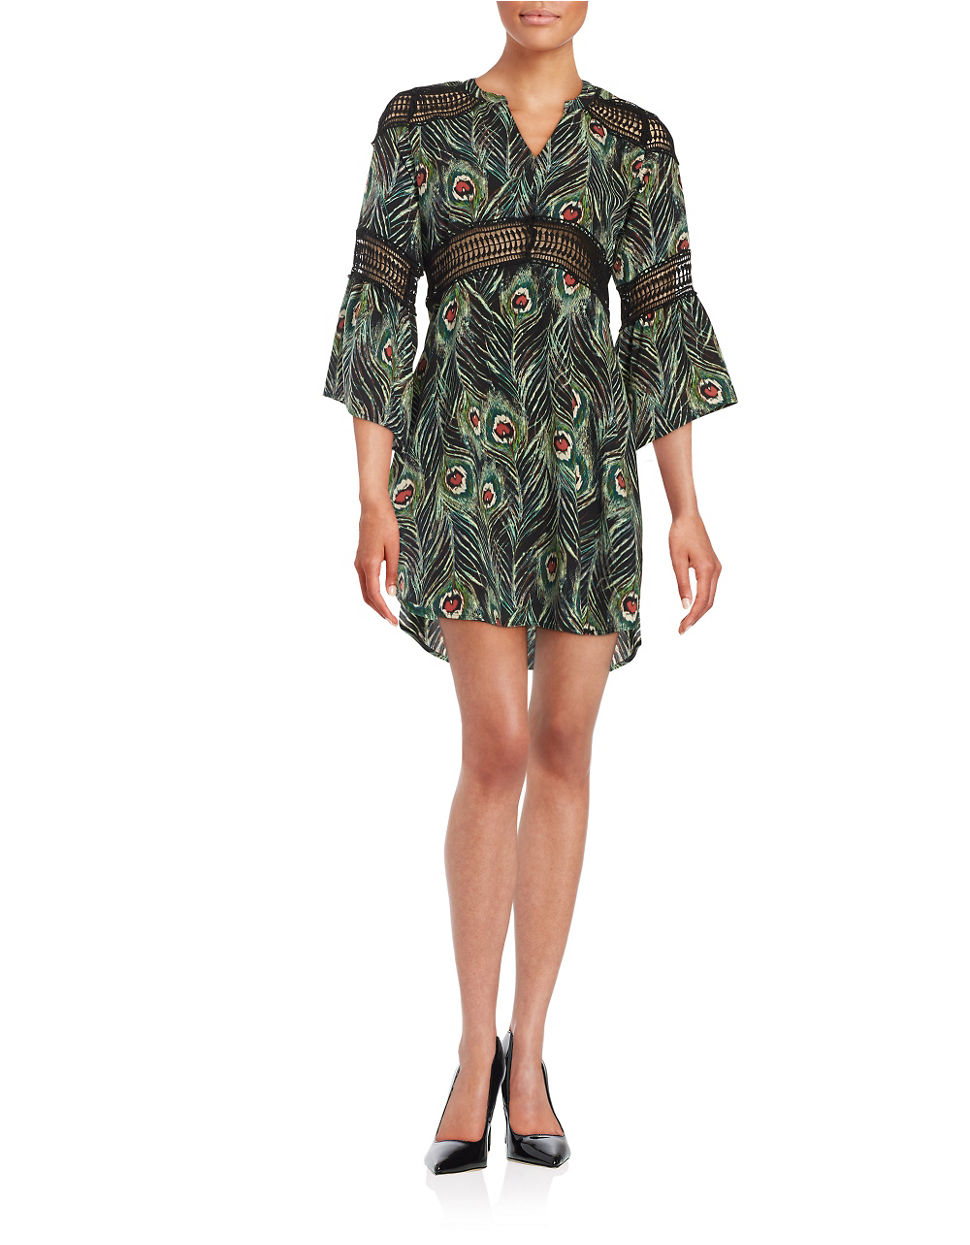 lord taylor lace accented patterned dress lyst